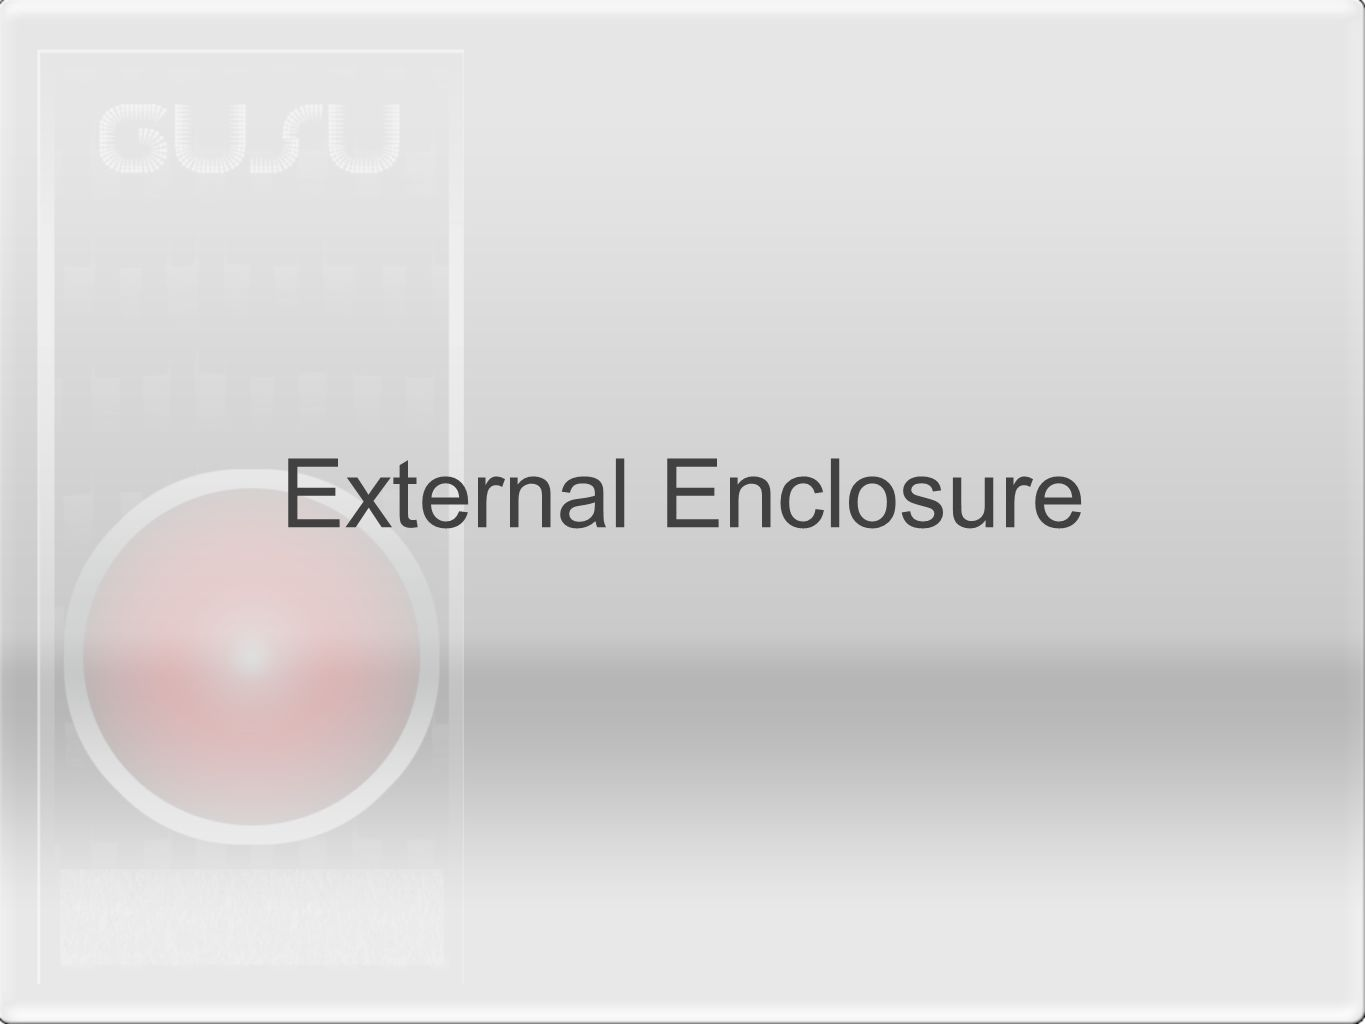 External Enclosure